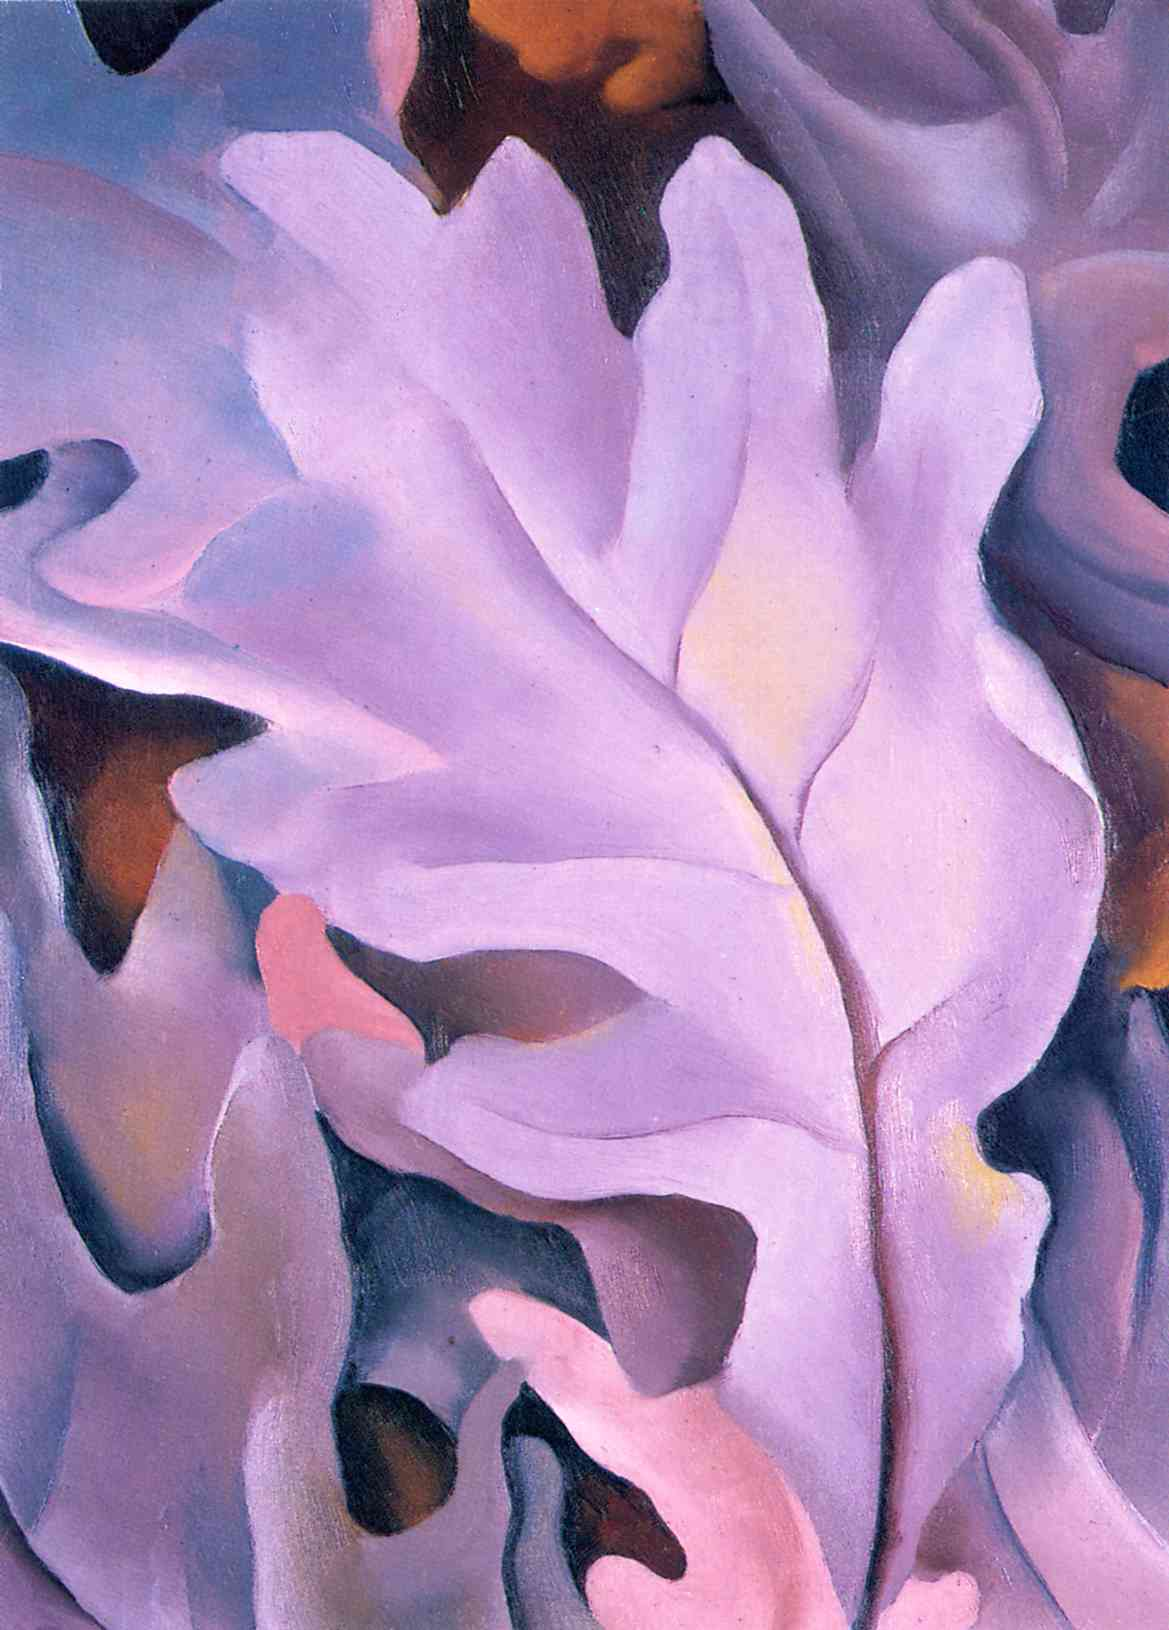 georgia o keeffe Georgia o'keeffe was one of america's greatest painters her iconic paintings are instantly recognizable find out what makes them so powerful.